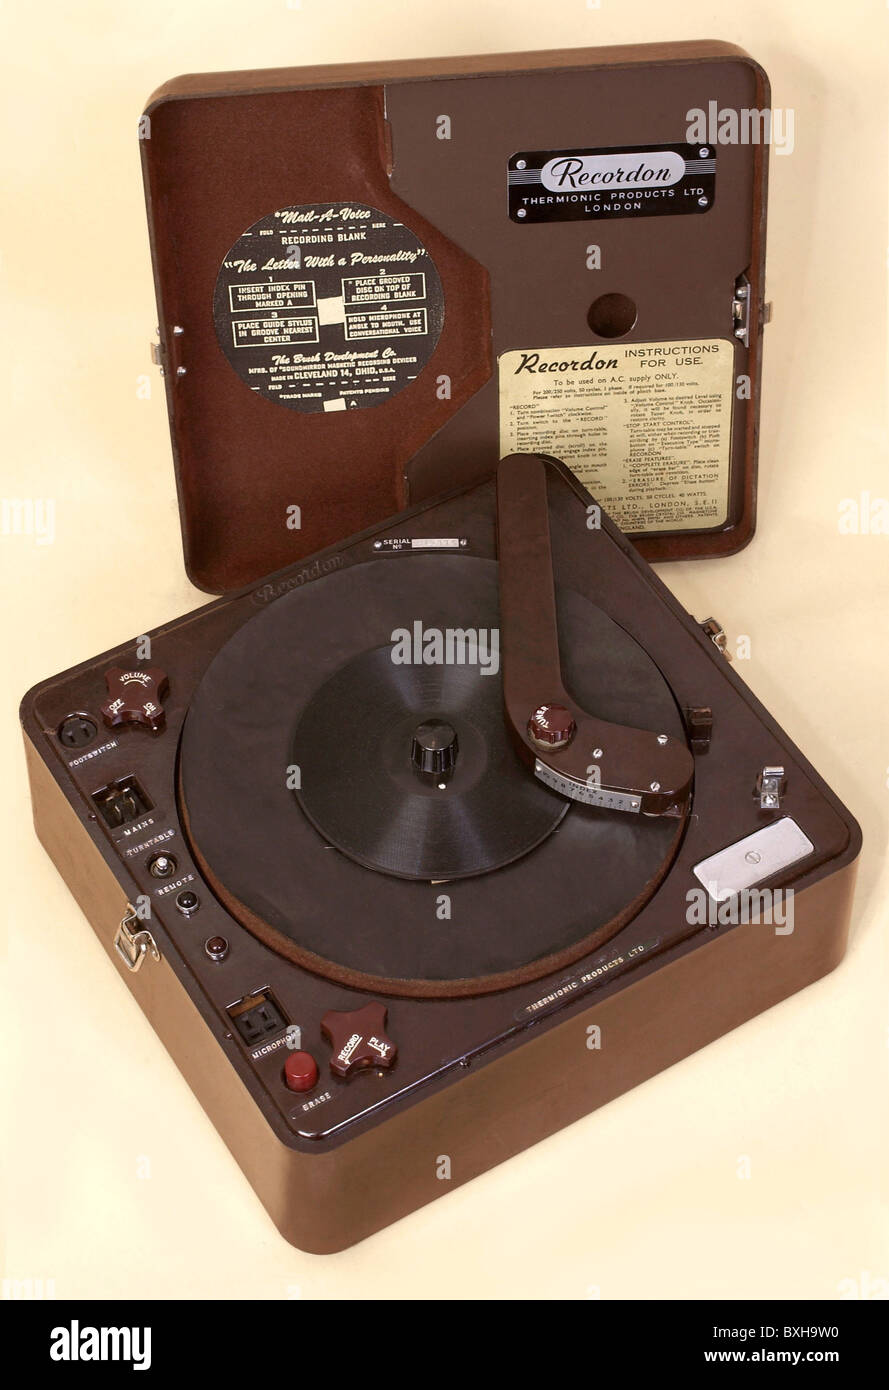 technics, record player, one of the first dictaphones, Recordon, made in England, 1935, Additional-Rights-Clearences - Stock Image